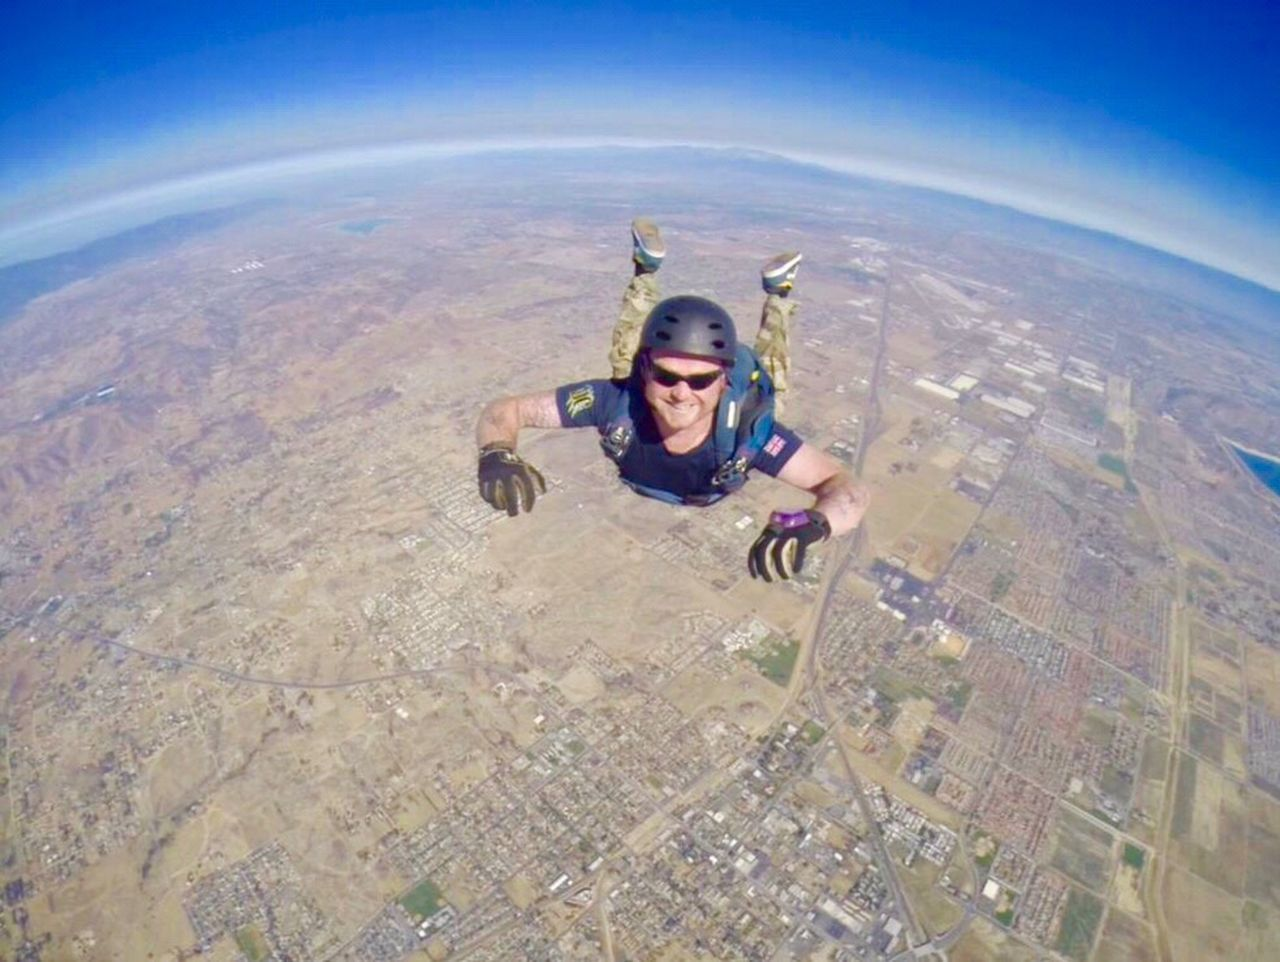 helmet, adventure, skydiving, fish-eye lens, fun, people, exhilaration, extreme sports, sports helmet, headwear, one person, looking at camera, full length, day, outdoors, smiling, leisure activity, excitement, aerial view, motion, portrait, human body part, happiness, sky, children only, adult, young adult